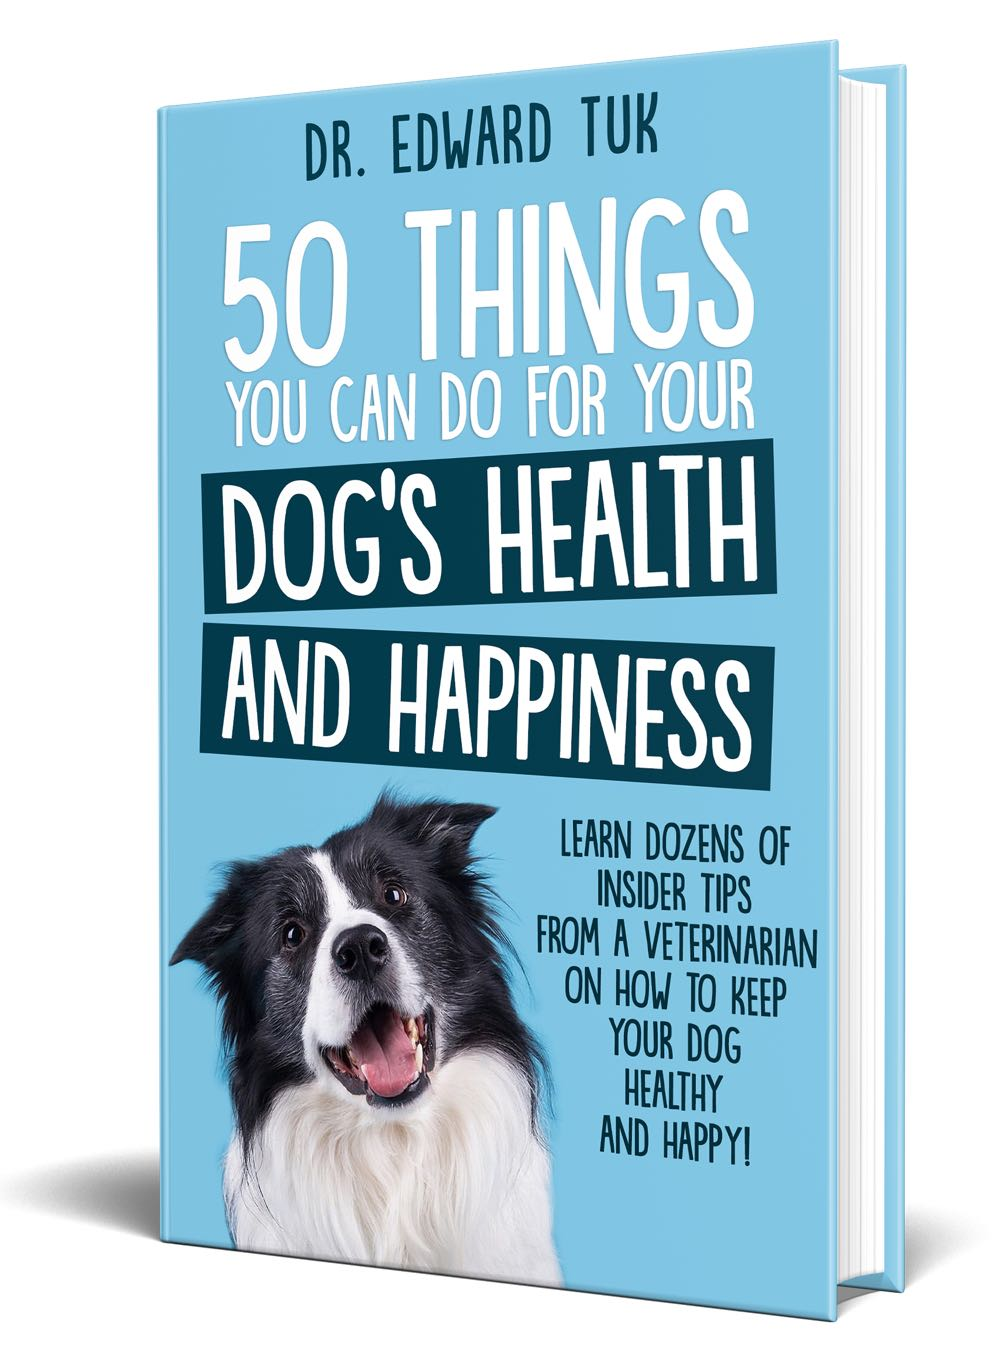 50 Things You Can Do For Your Dog's Health and Happiness